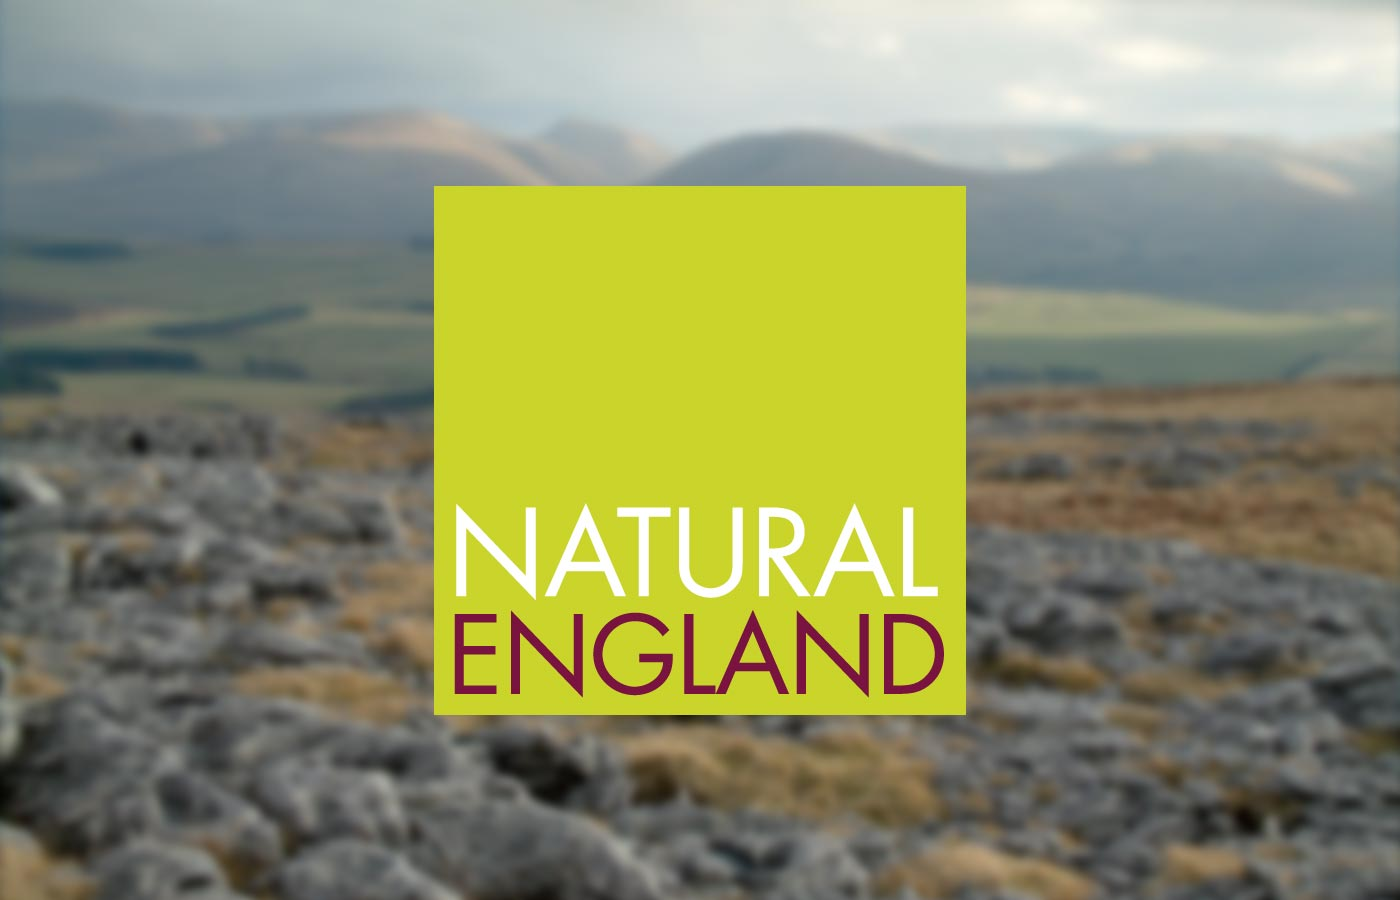 Natural England Poster Campaign Design